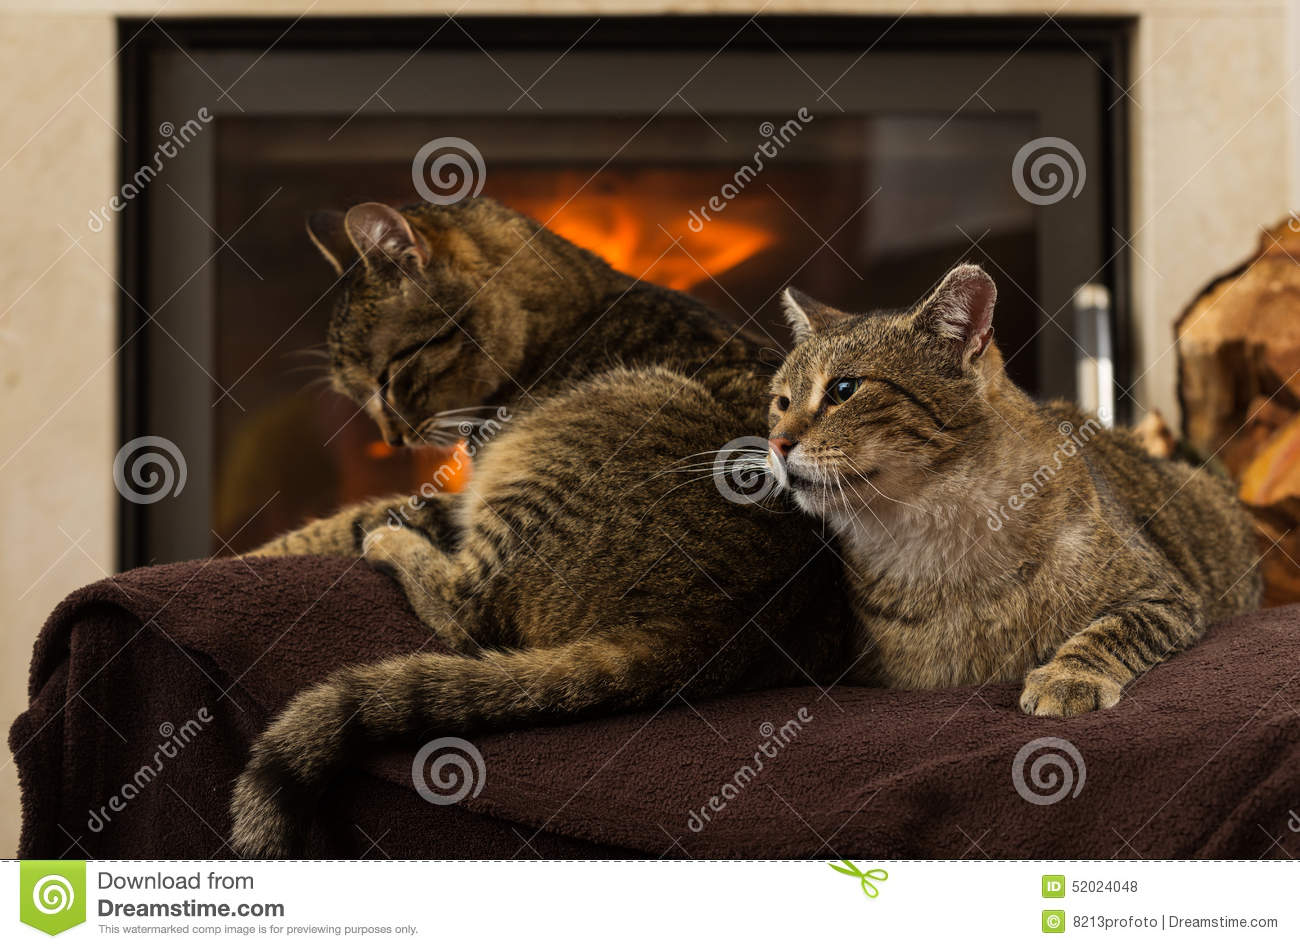 Cats In Front Of Fireplace Stock Photo - Image: 52024048